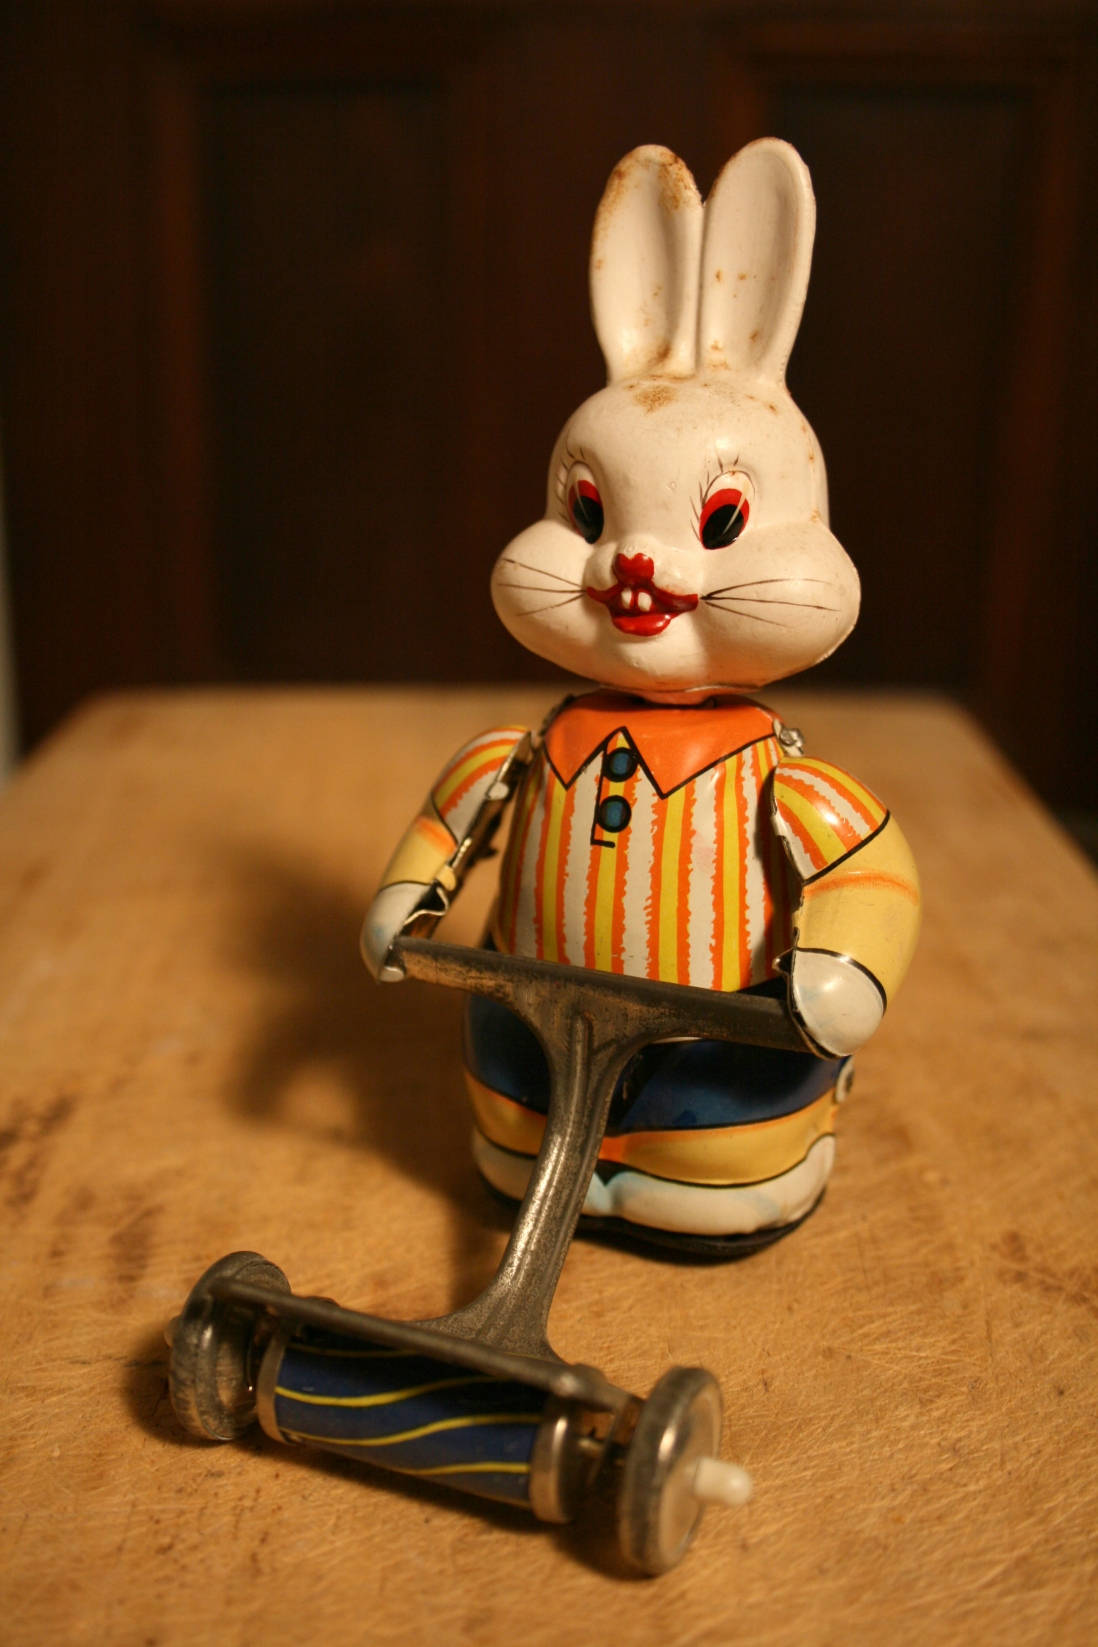 A tin white rabbit with stripped shirt pushing a lawn mower